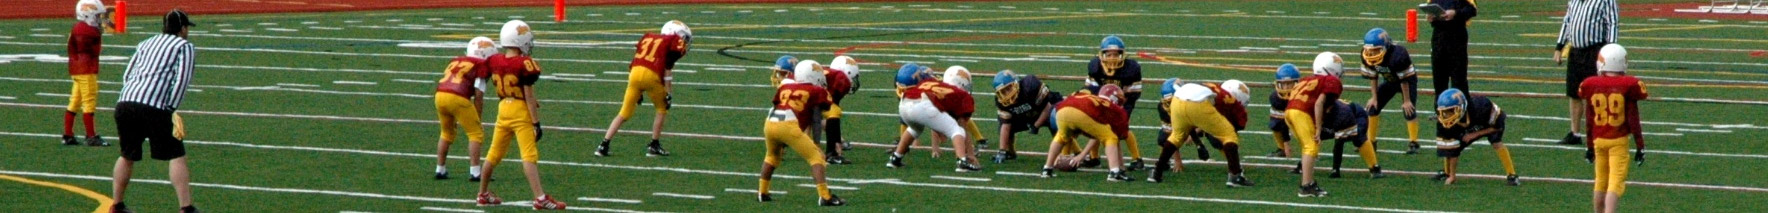 youthfootball game